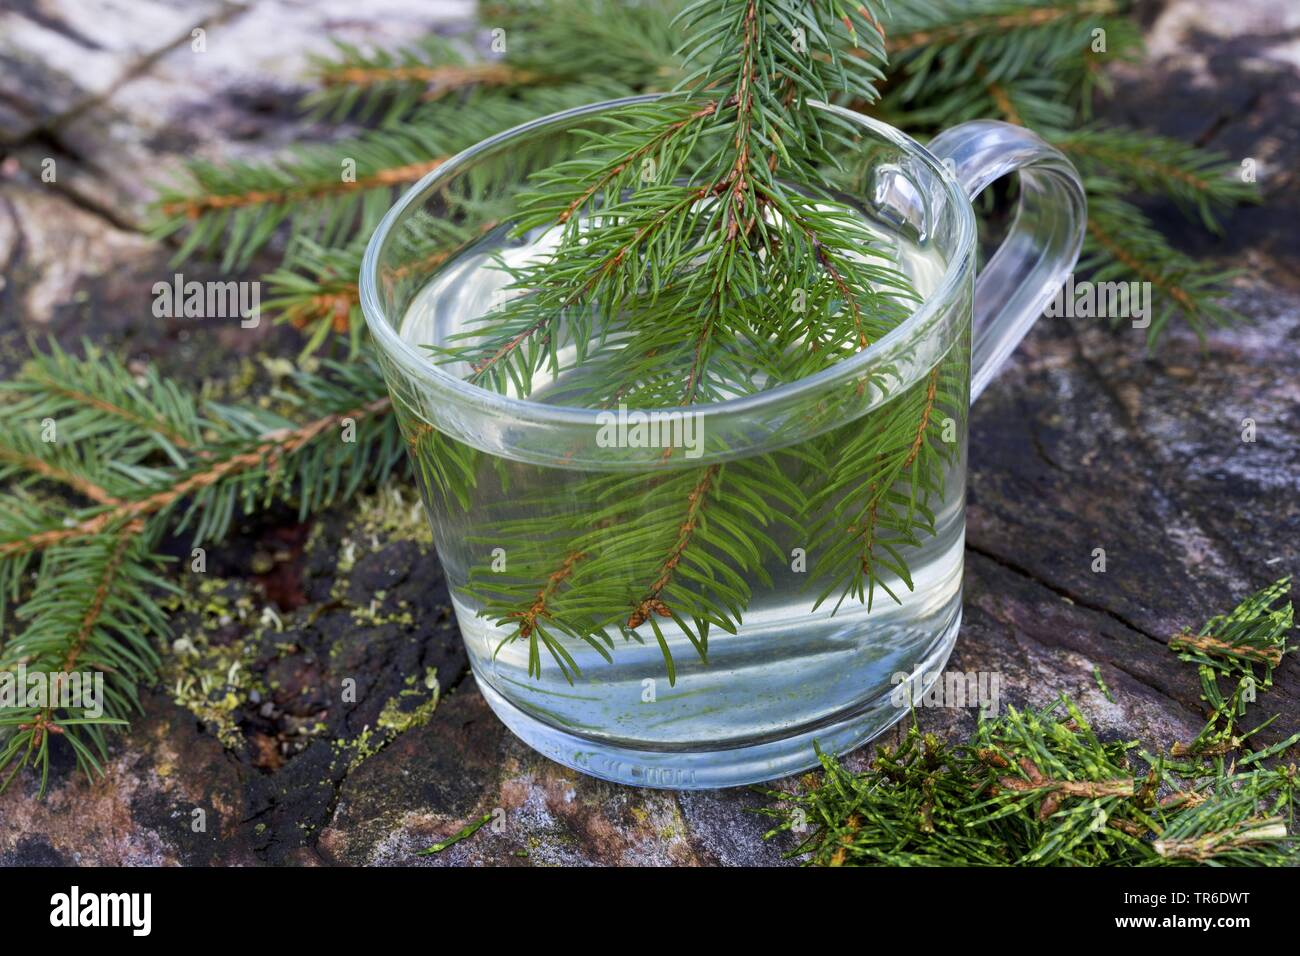 Norway spruce (Picea abies), tree from spruce needle, Germany - Stock Image